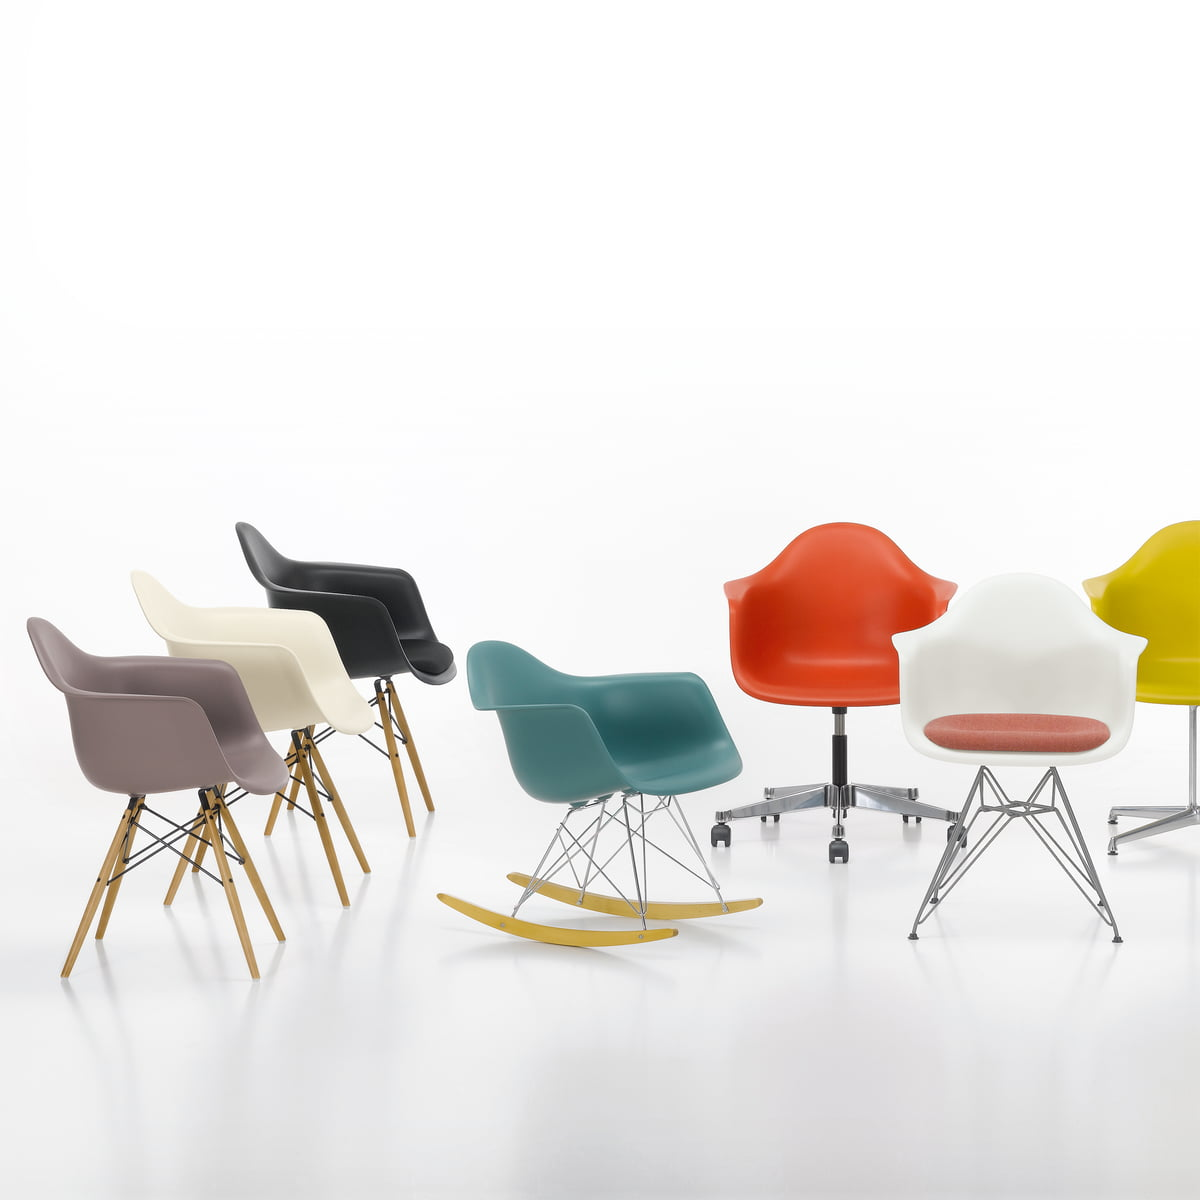 Eames plastic chairs all office - Vitra Eames Plastic Armchairs Group